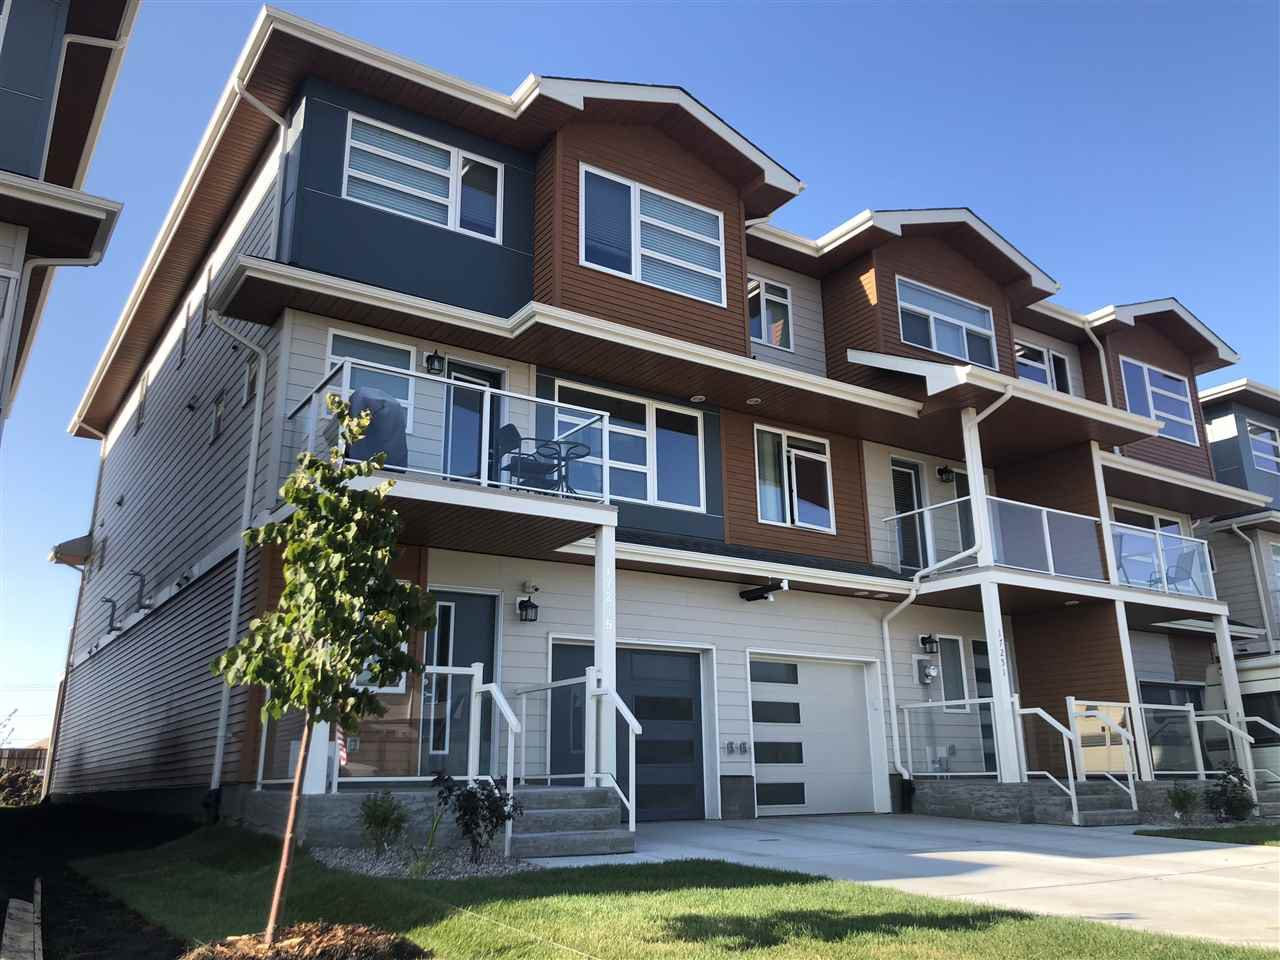 Main Photo: 17245 9 AVE SW in Edmonton: Zone 56 Attached Home for sale : MLS®# E4168616